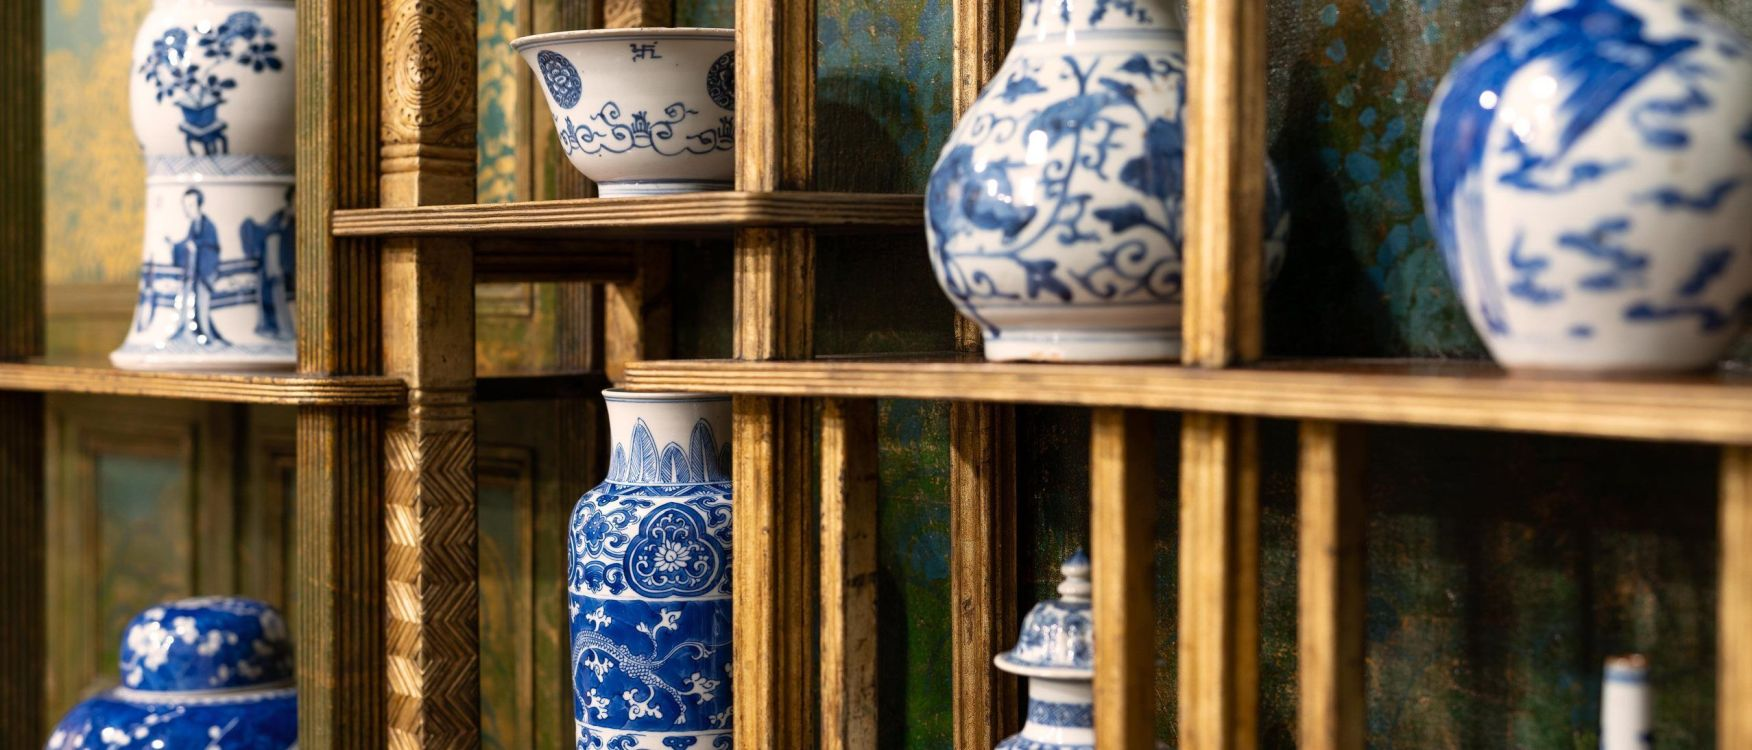 The Peacock Room in Blue and White